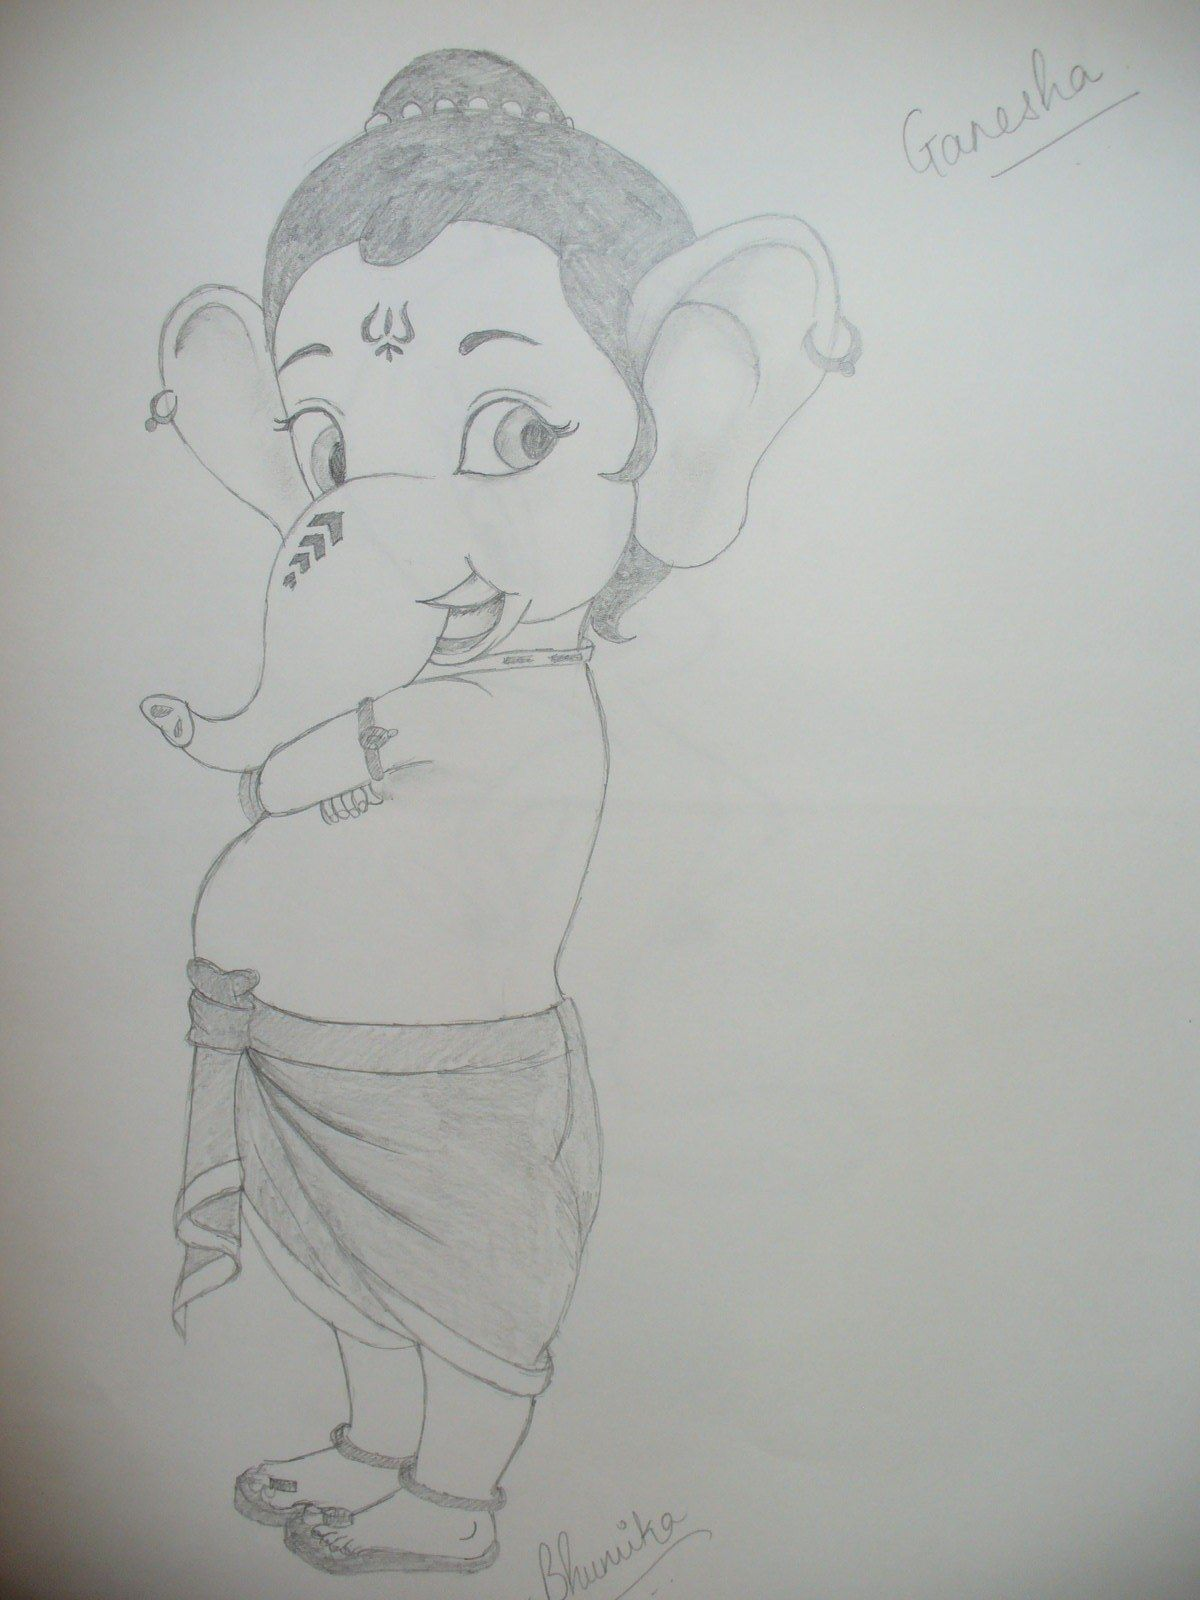 Ganesha pencil drawing girl pencil sketch